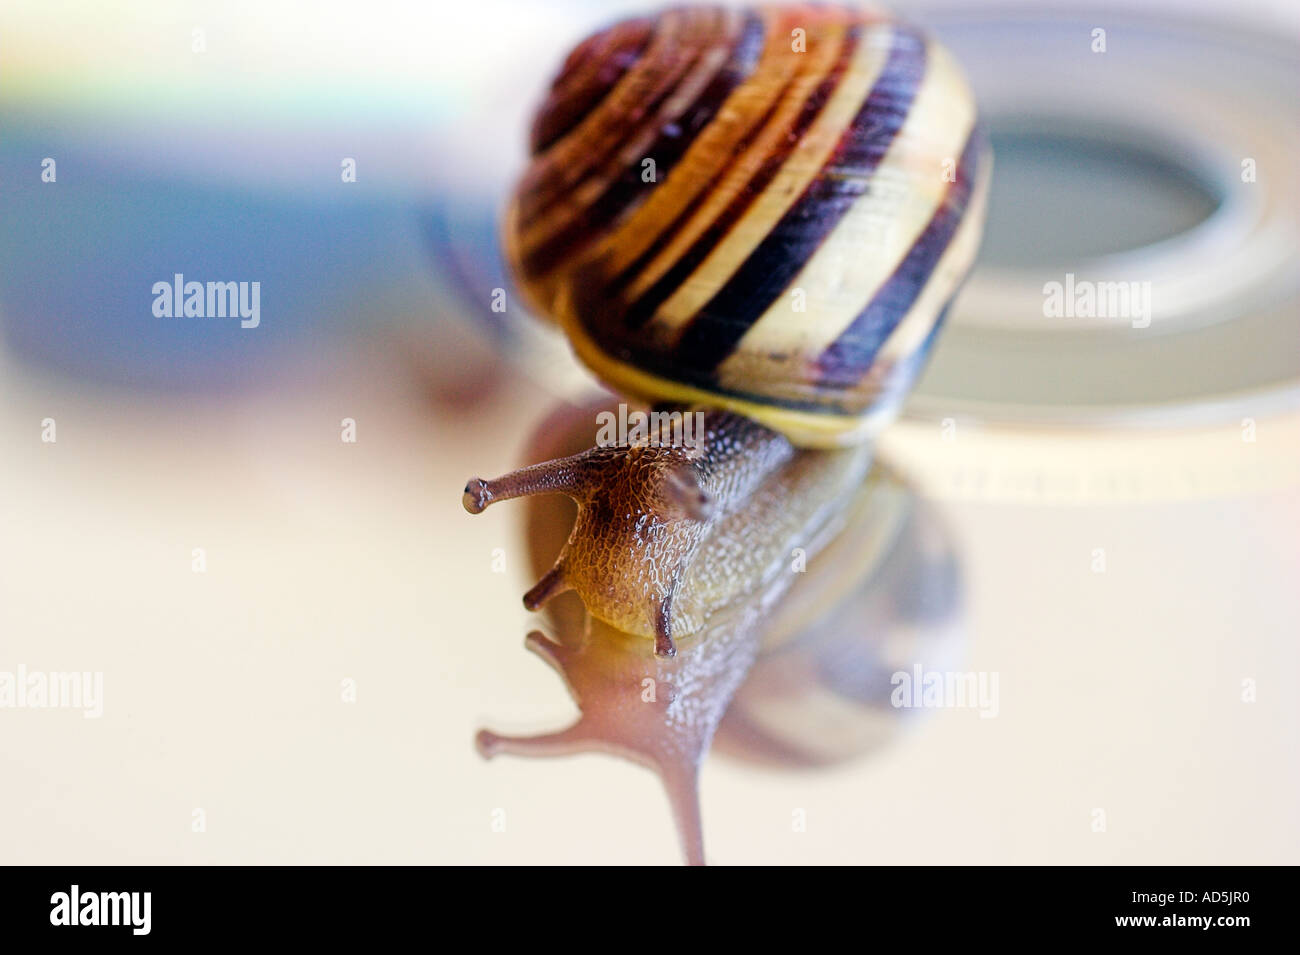 Snail on a compact disc Stock Photo